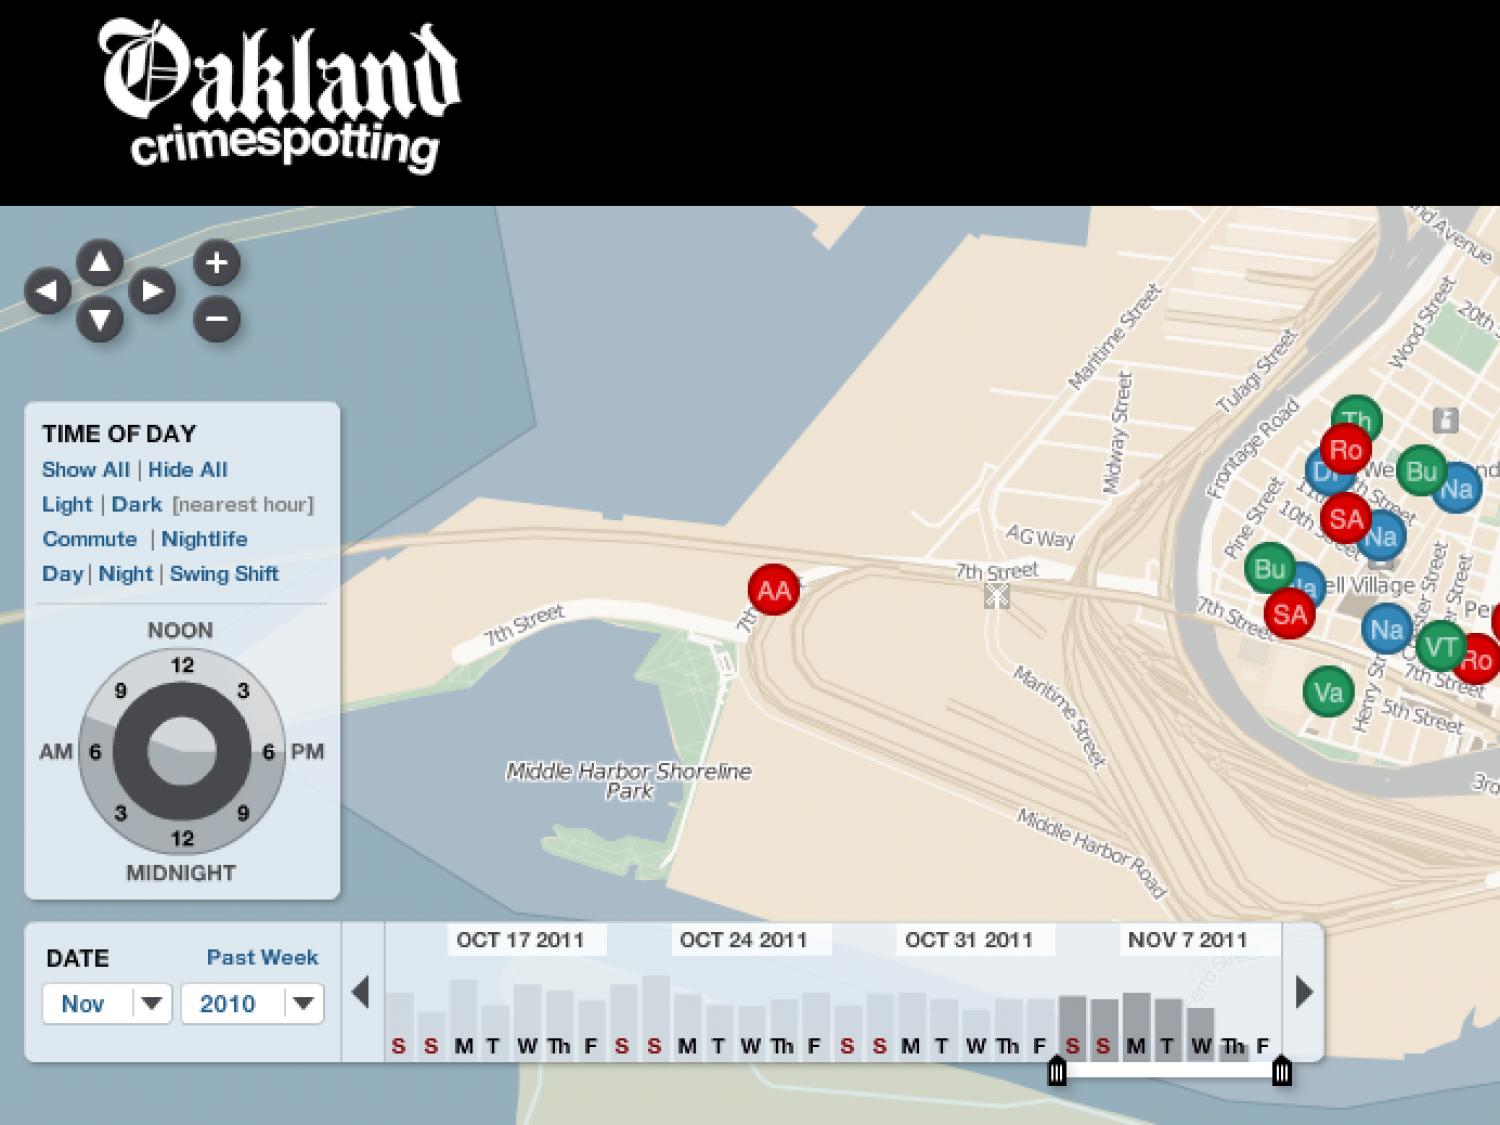 Oakland Crimespotting Infographic